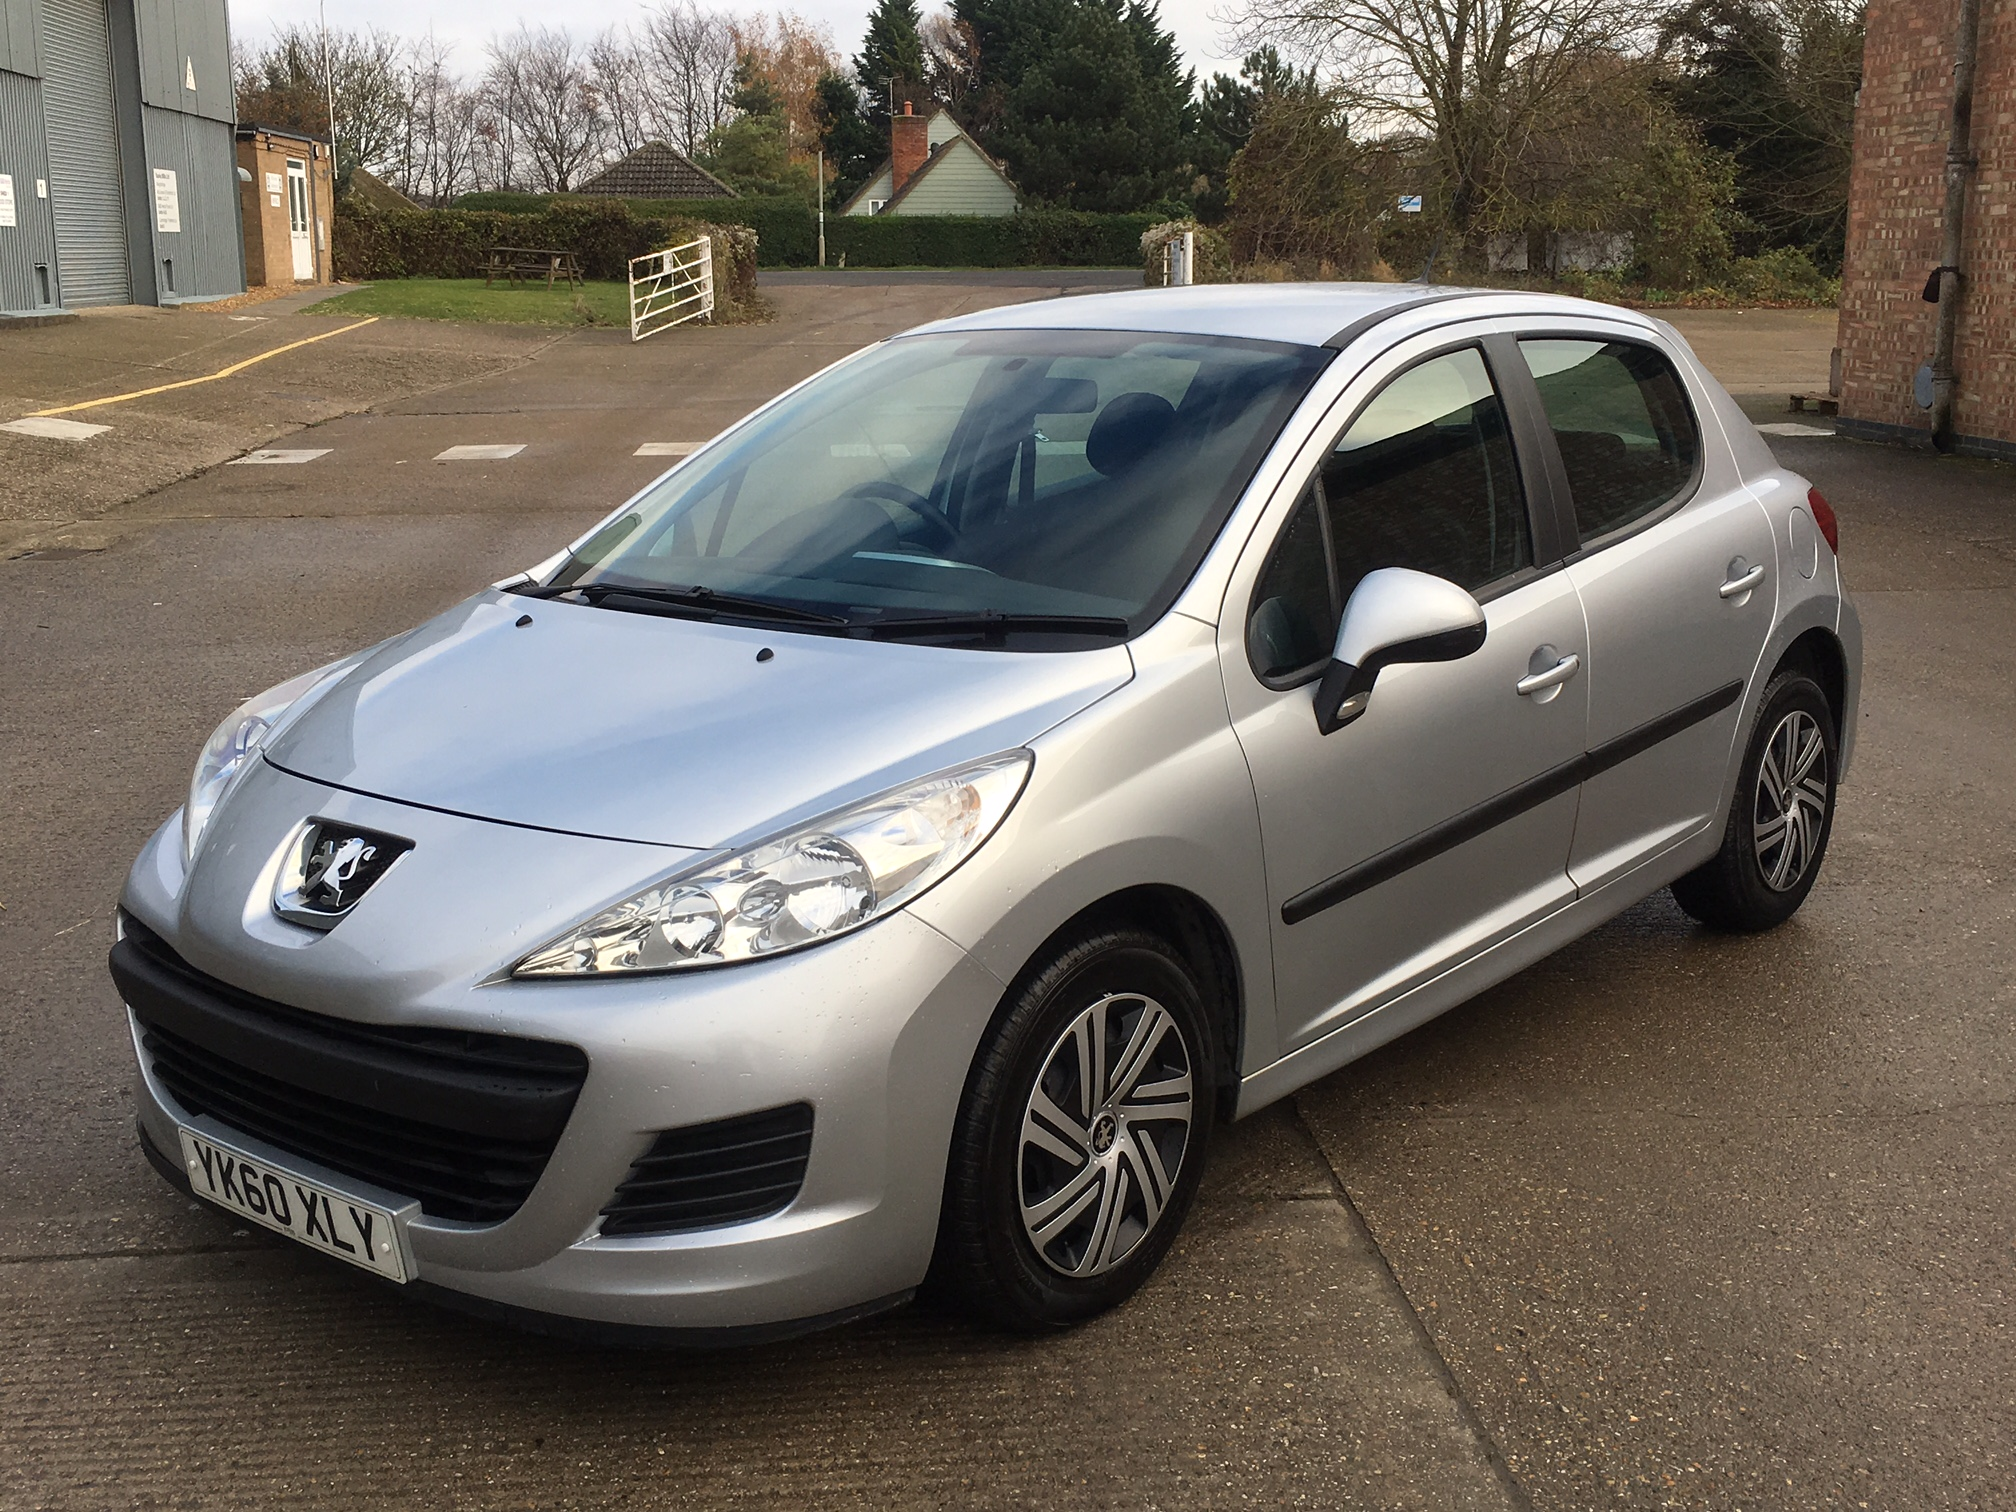 peugeot 207 s 1 4 hdi 5dr 2010 sold willow car sales newmarket. Black Bedroom Furniture Sets. Home Design Ideas